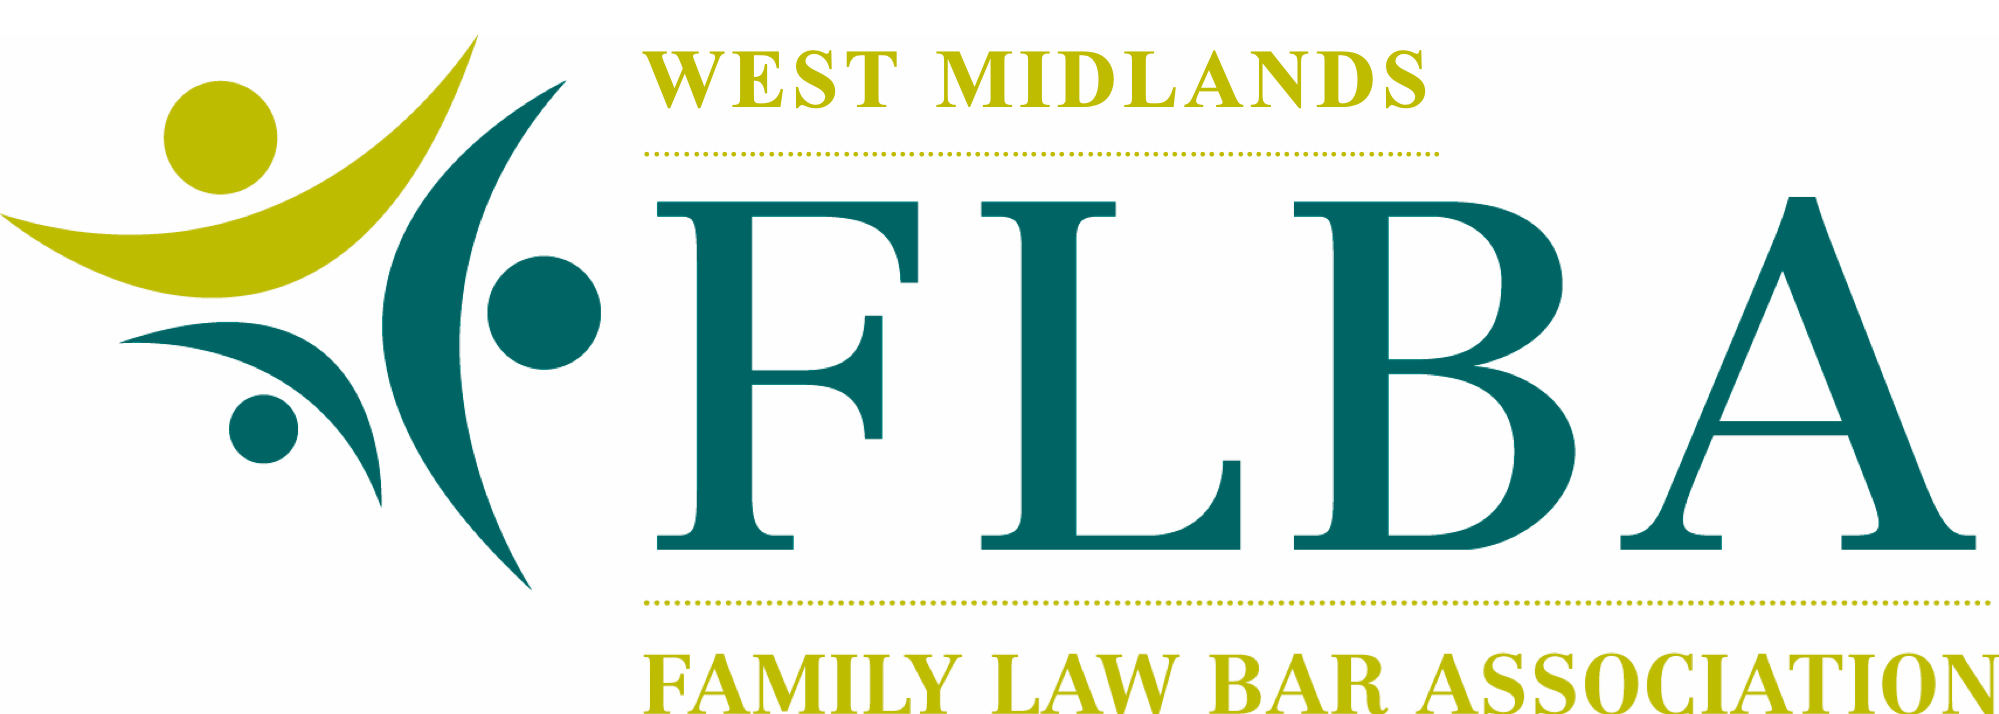 West Midlands FLBA